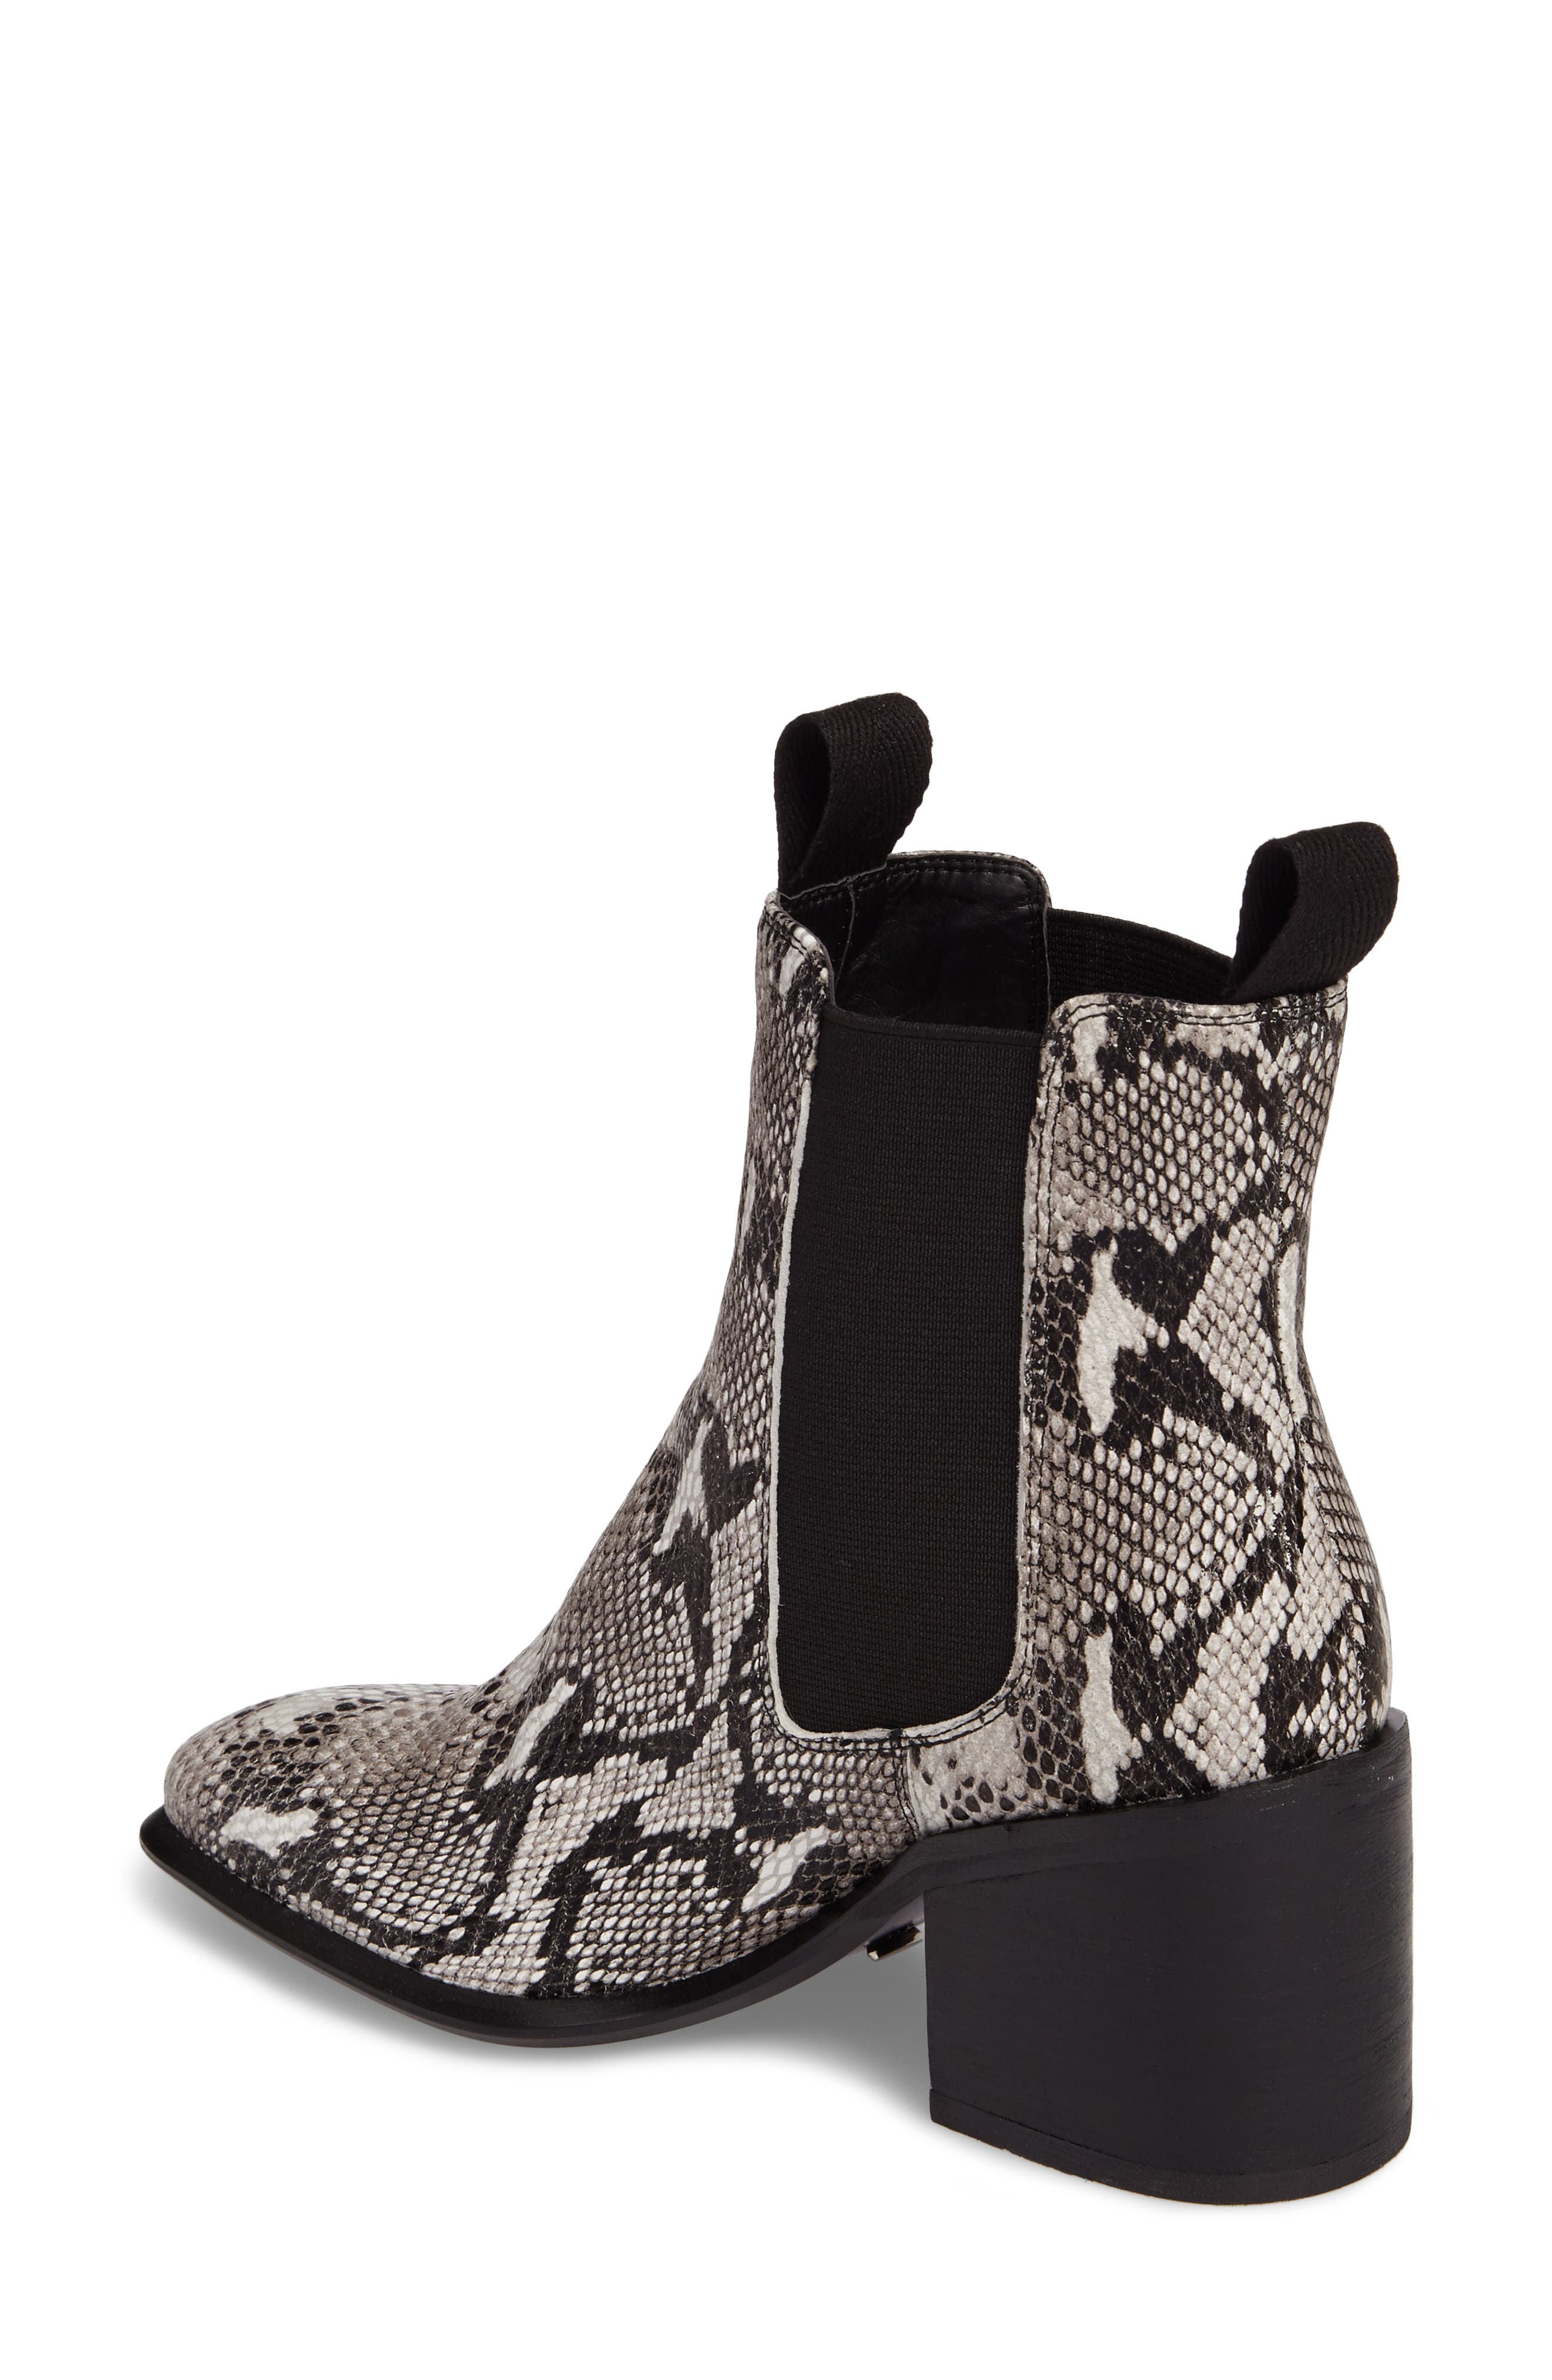 Hampton Bootie,                             Alternate thumbnail 2, color,                             Natural Snake Print Leather